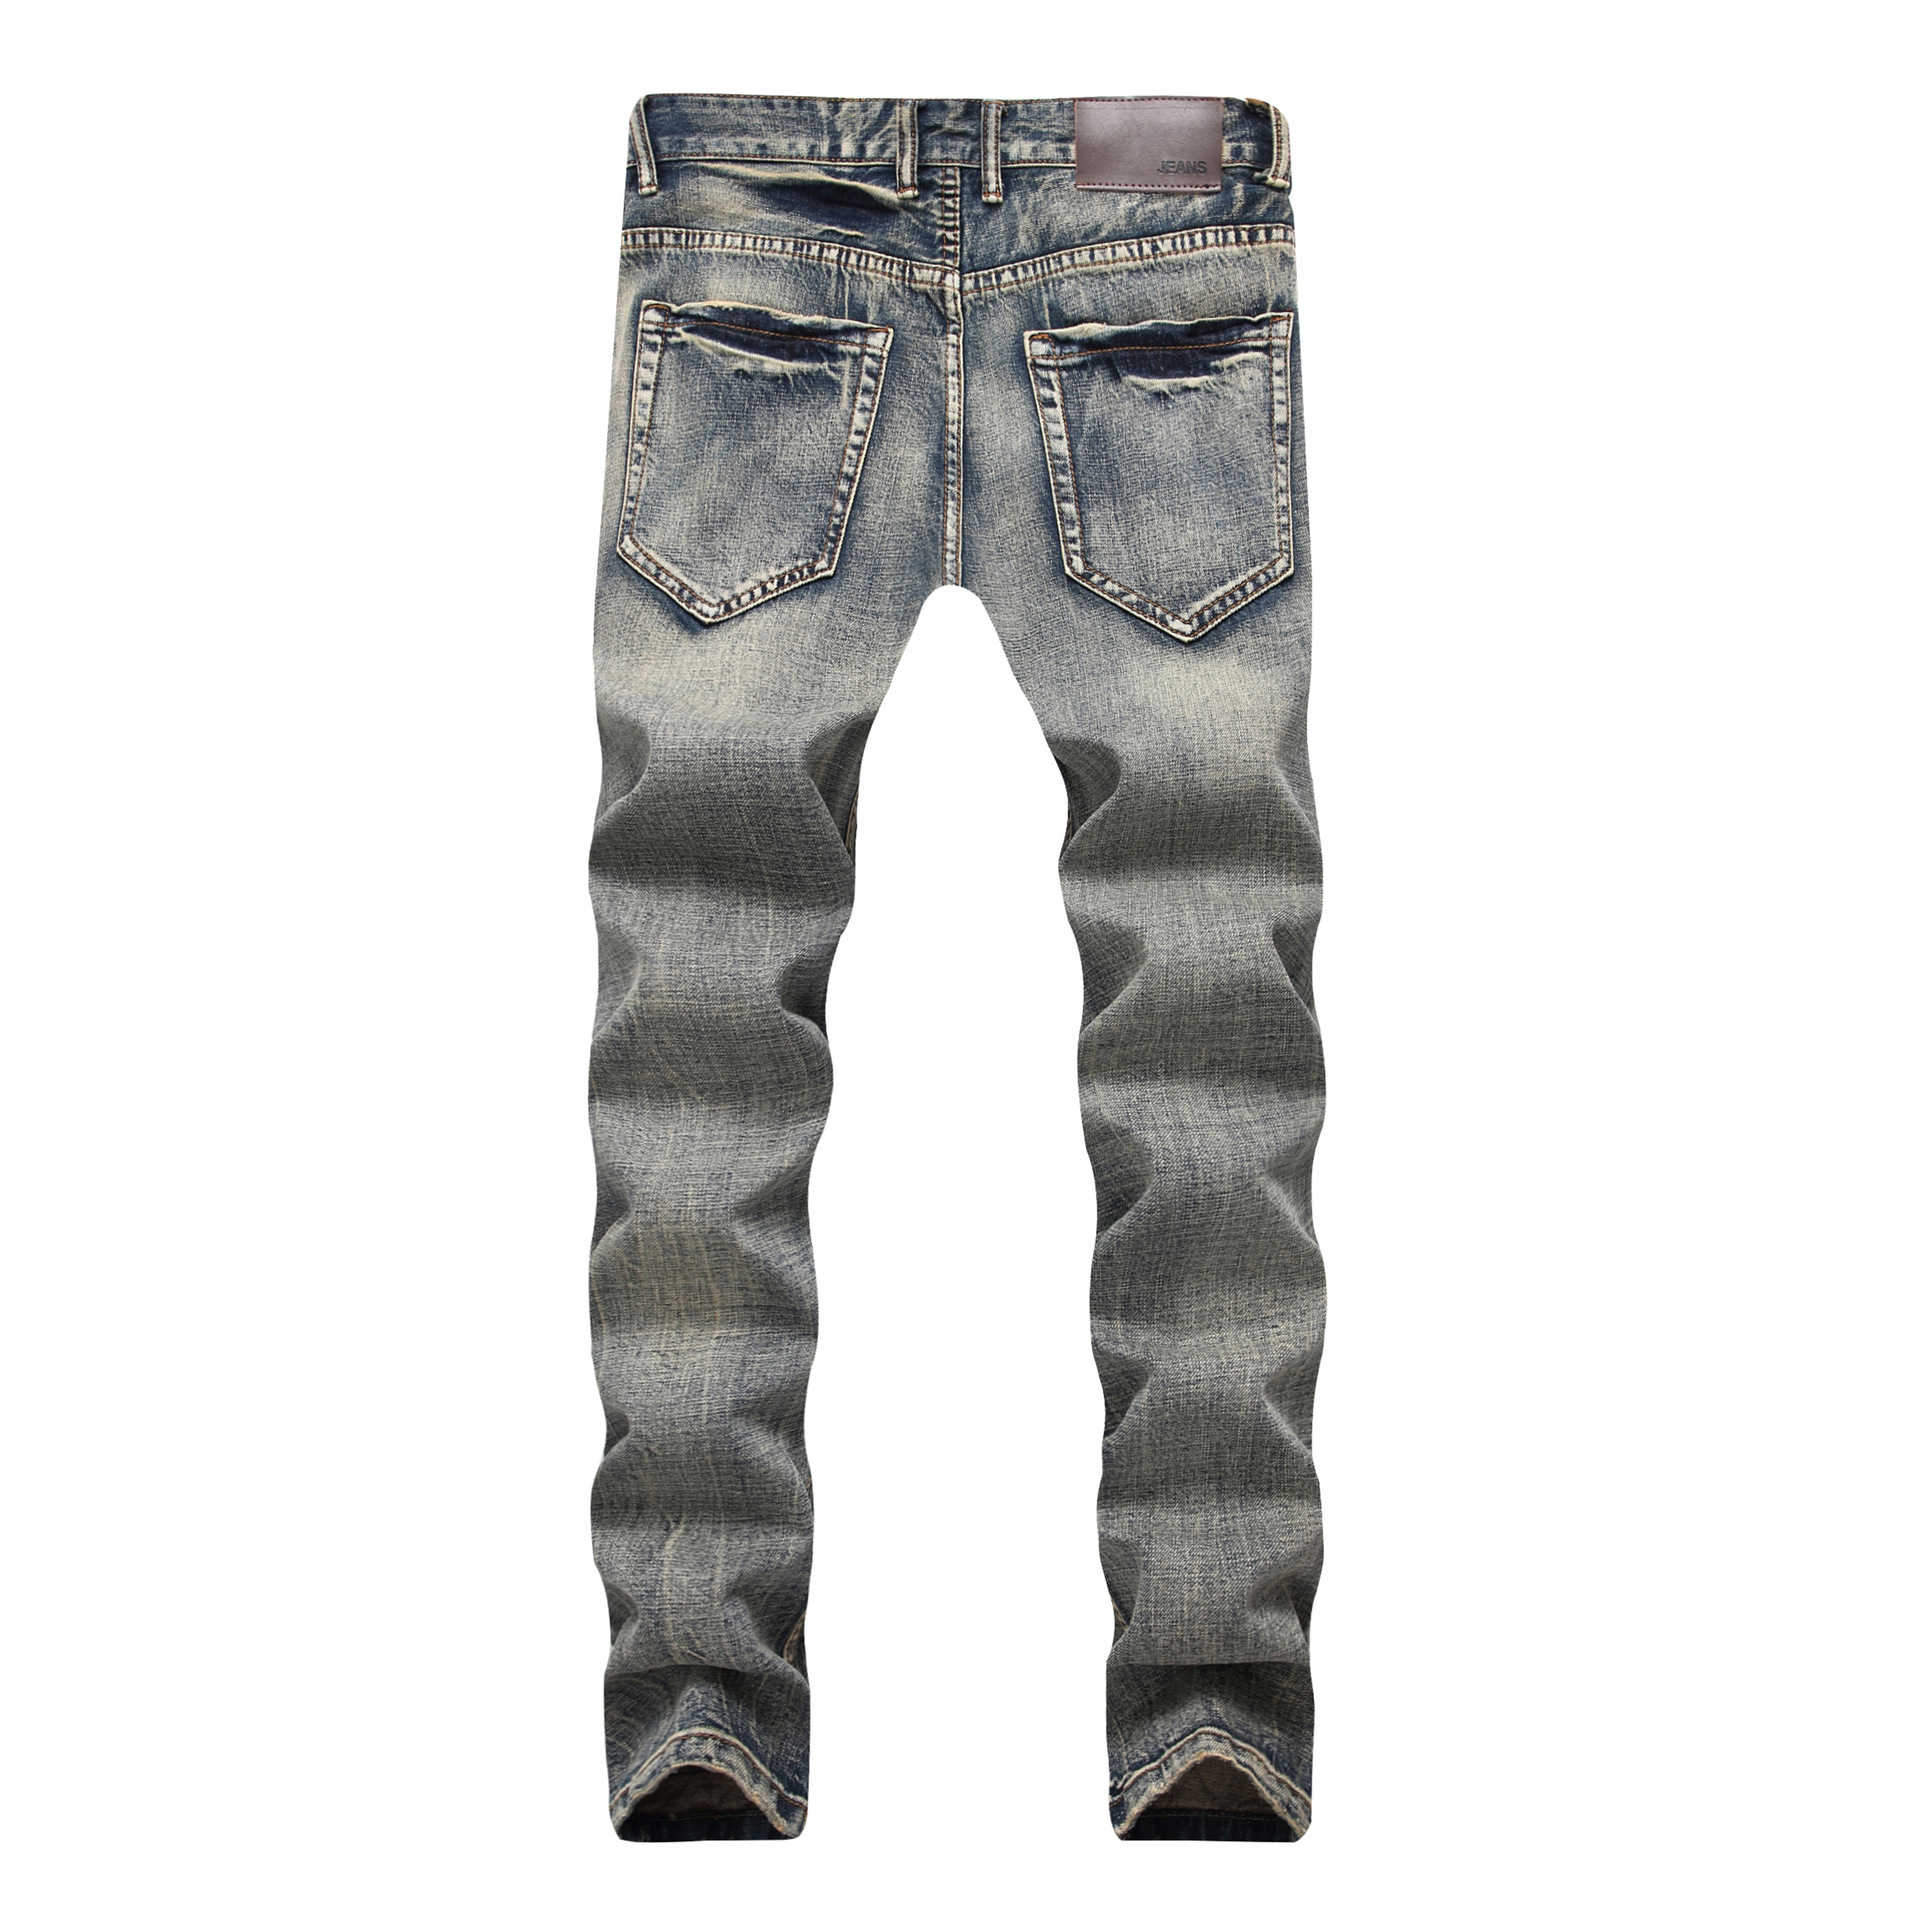 2019 Men'S Wear With Holes Nostalgic Jeans Base Fabric Multi-Frayed Chong Lan Cowboy Trousers